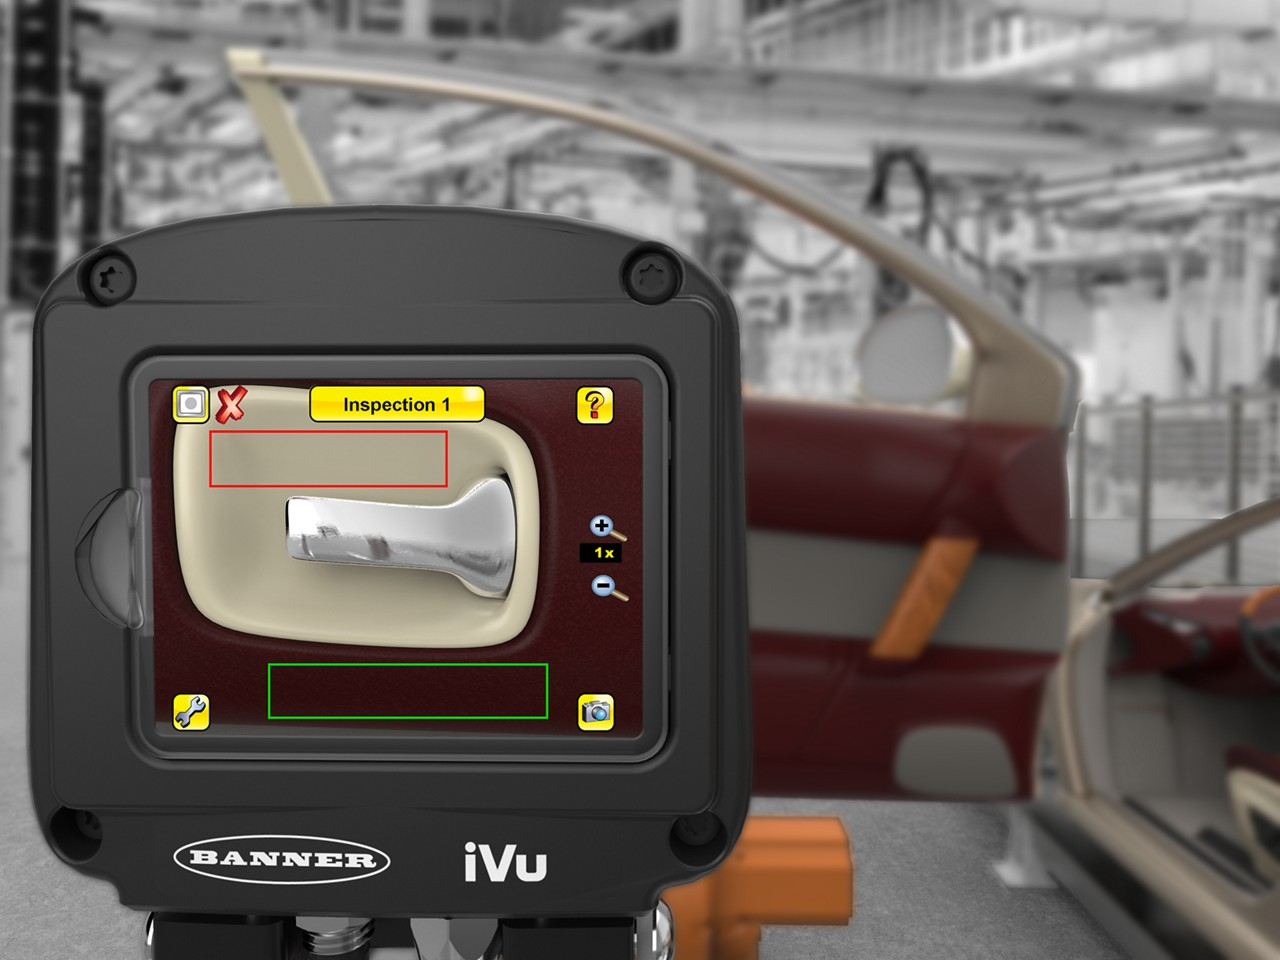 ivu color sensor detects the wrong color trim on a car door